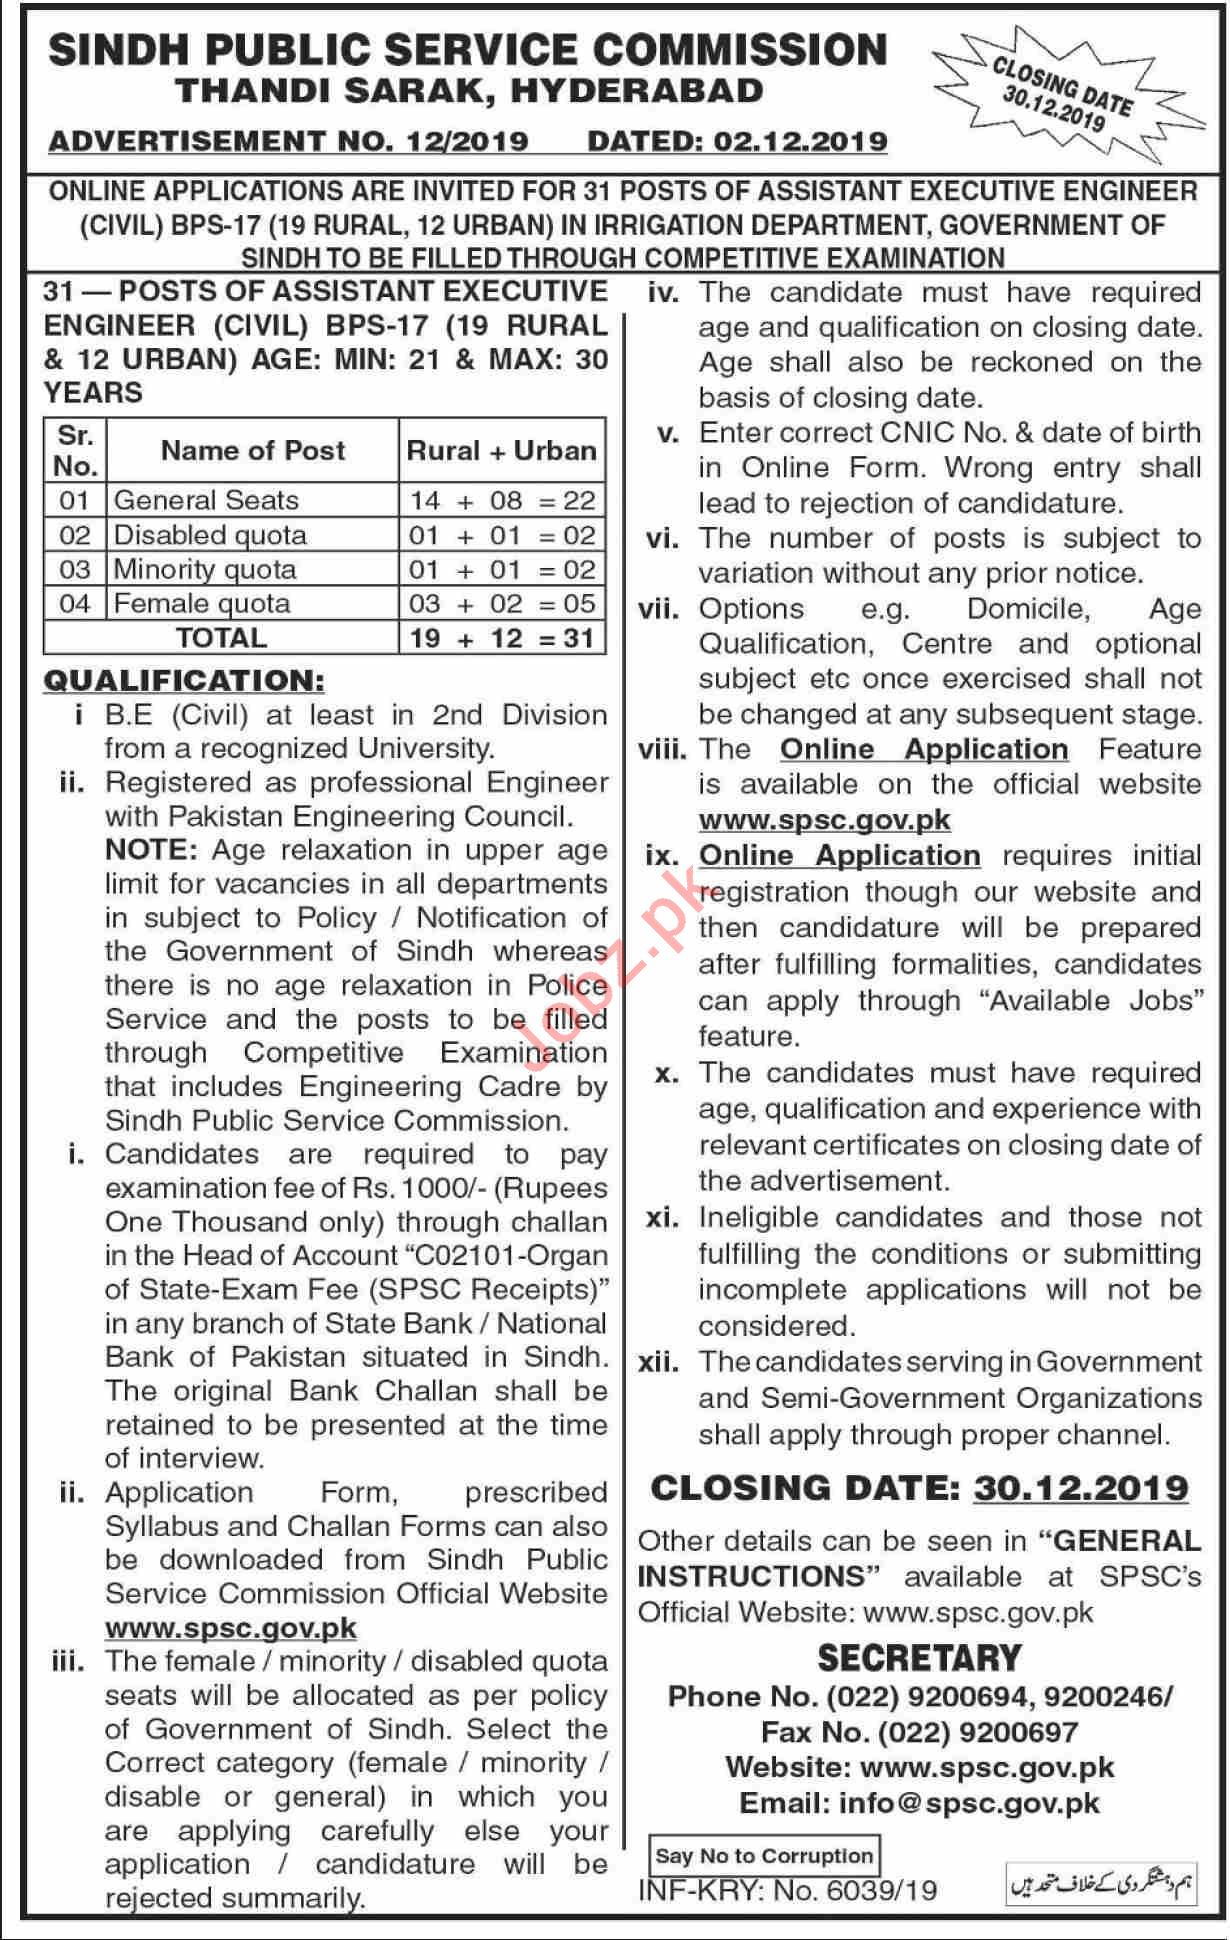 SPSC Sindh Public Service Commission Jobs 2019 for Engineers